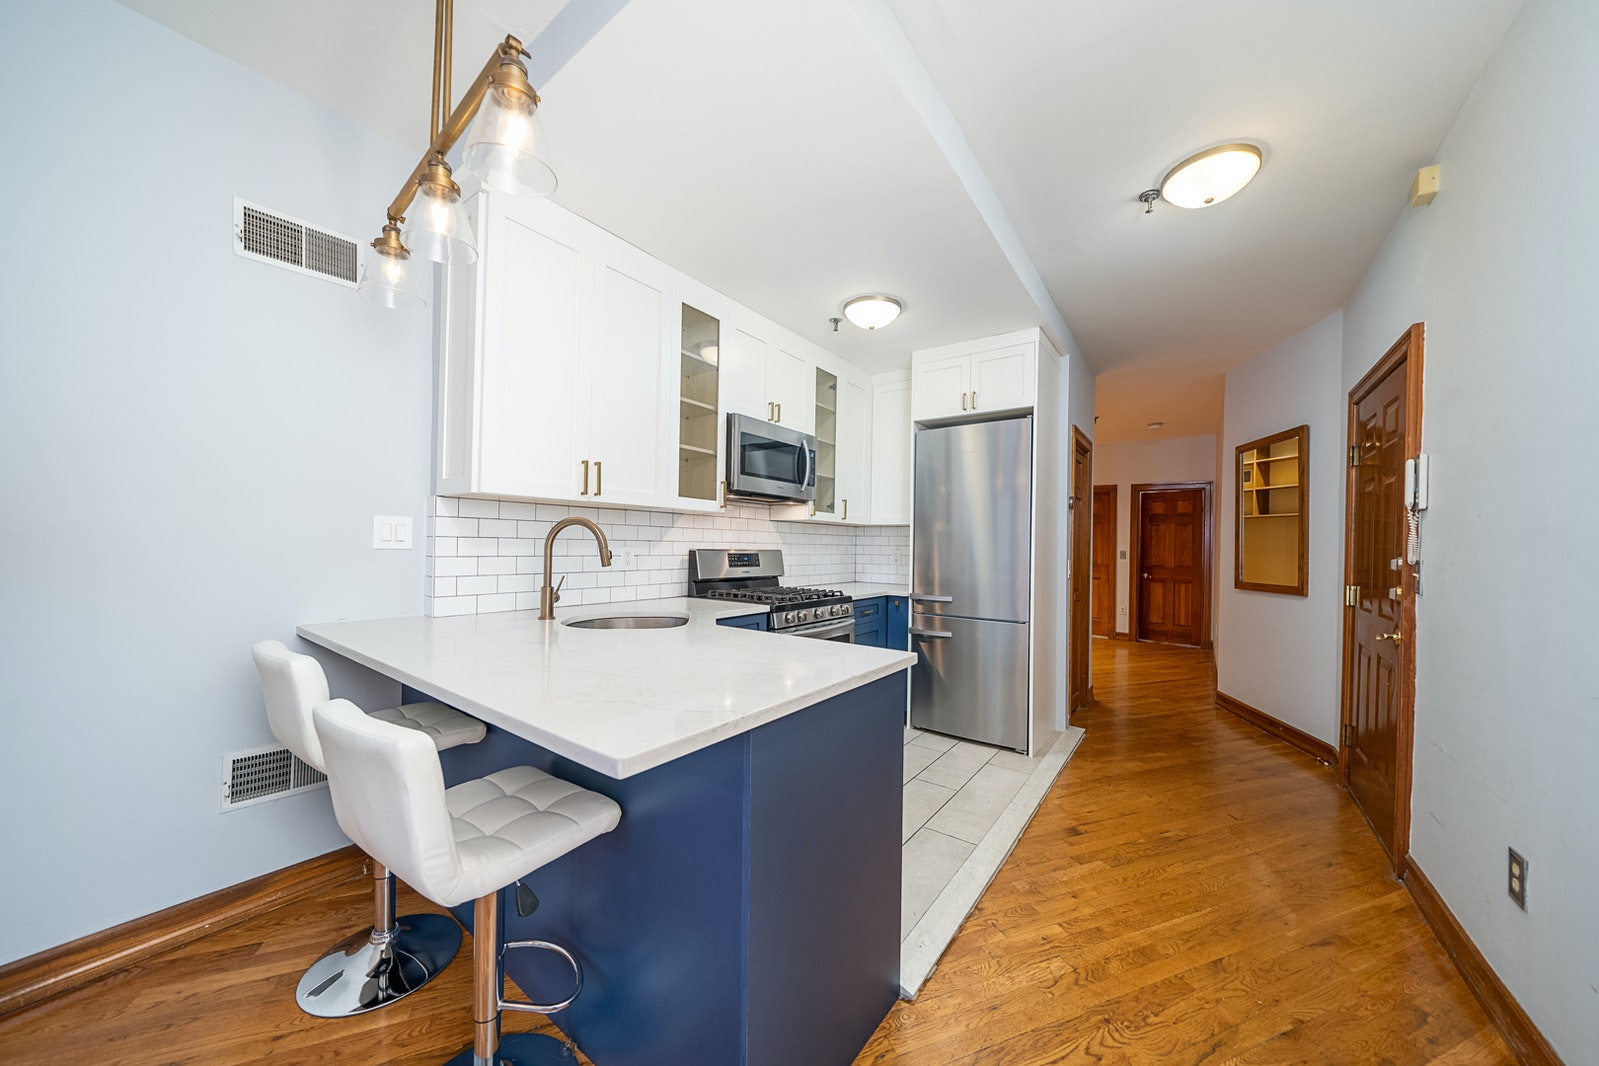 509 Madison St 1b, Hoboken, New Jersey, 07030, $625,000, Property For Sale, Halstead Real Estate, Photo 7